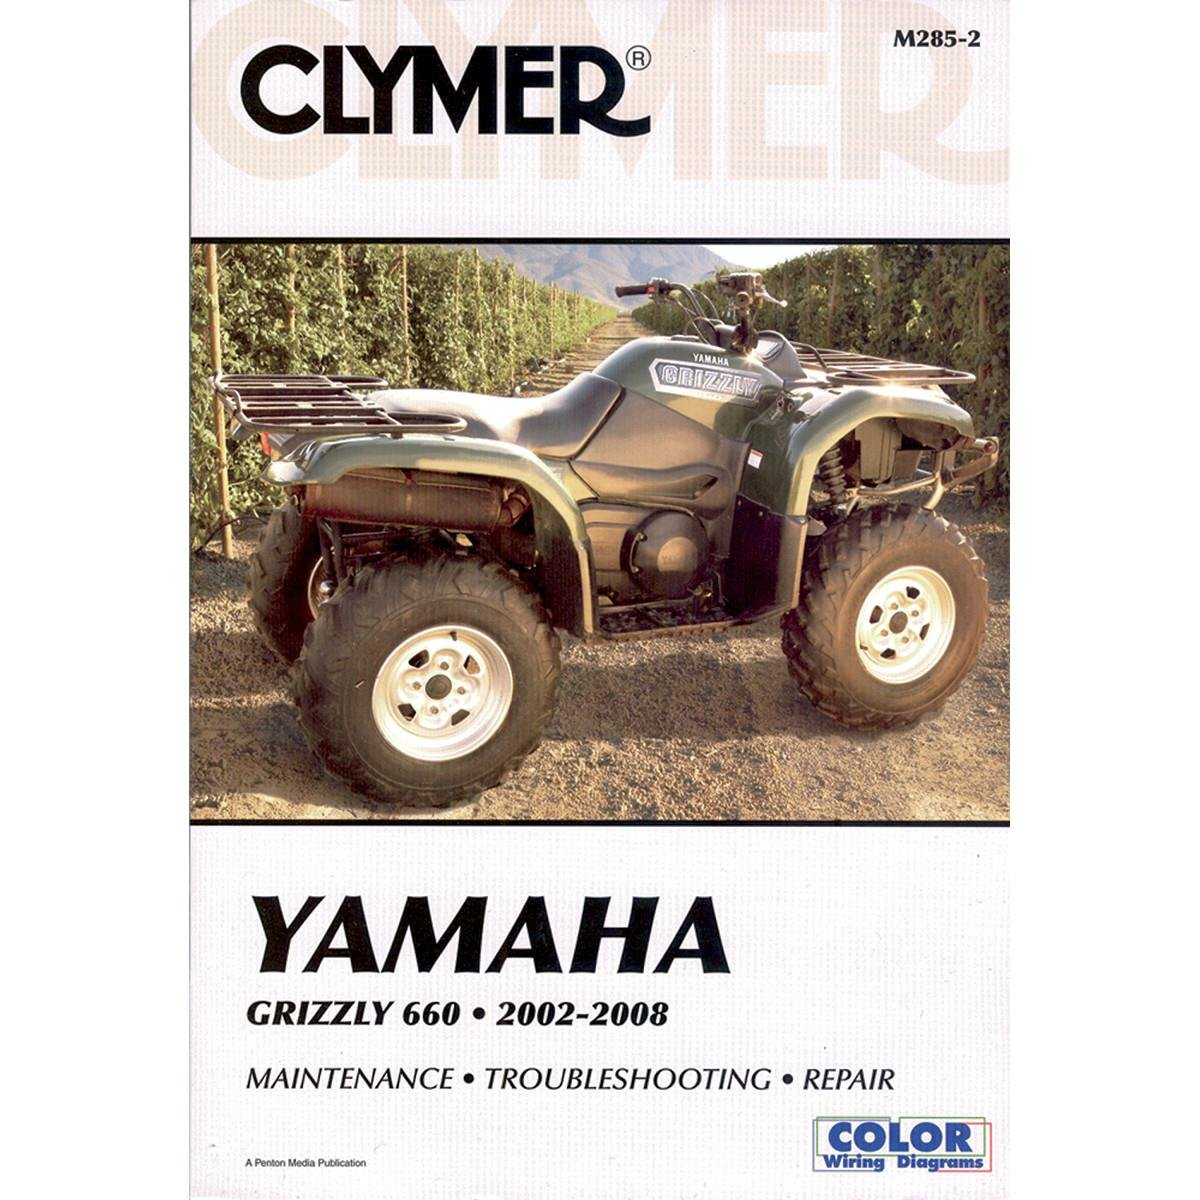 Yamaha Atv Grizzly 660 Wiring Diagram   Wiring Diagram on